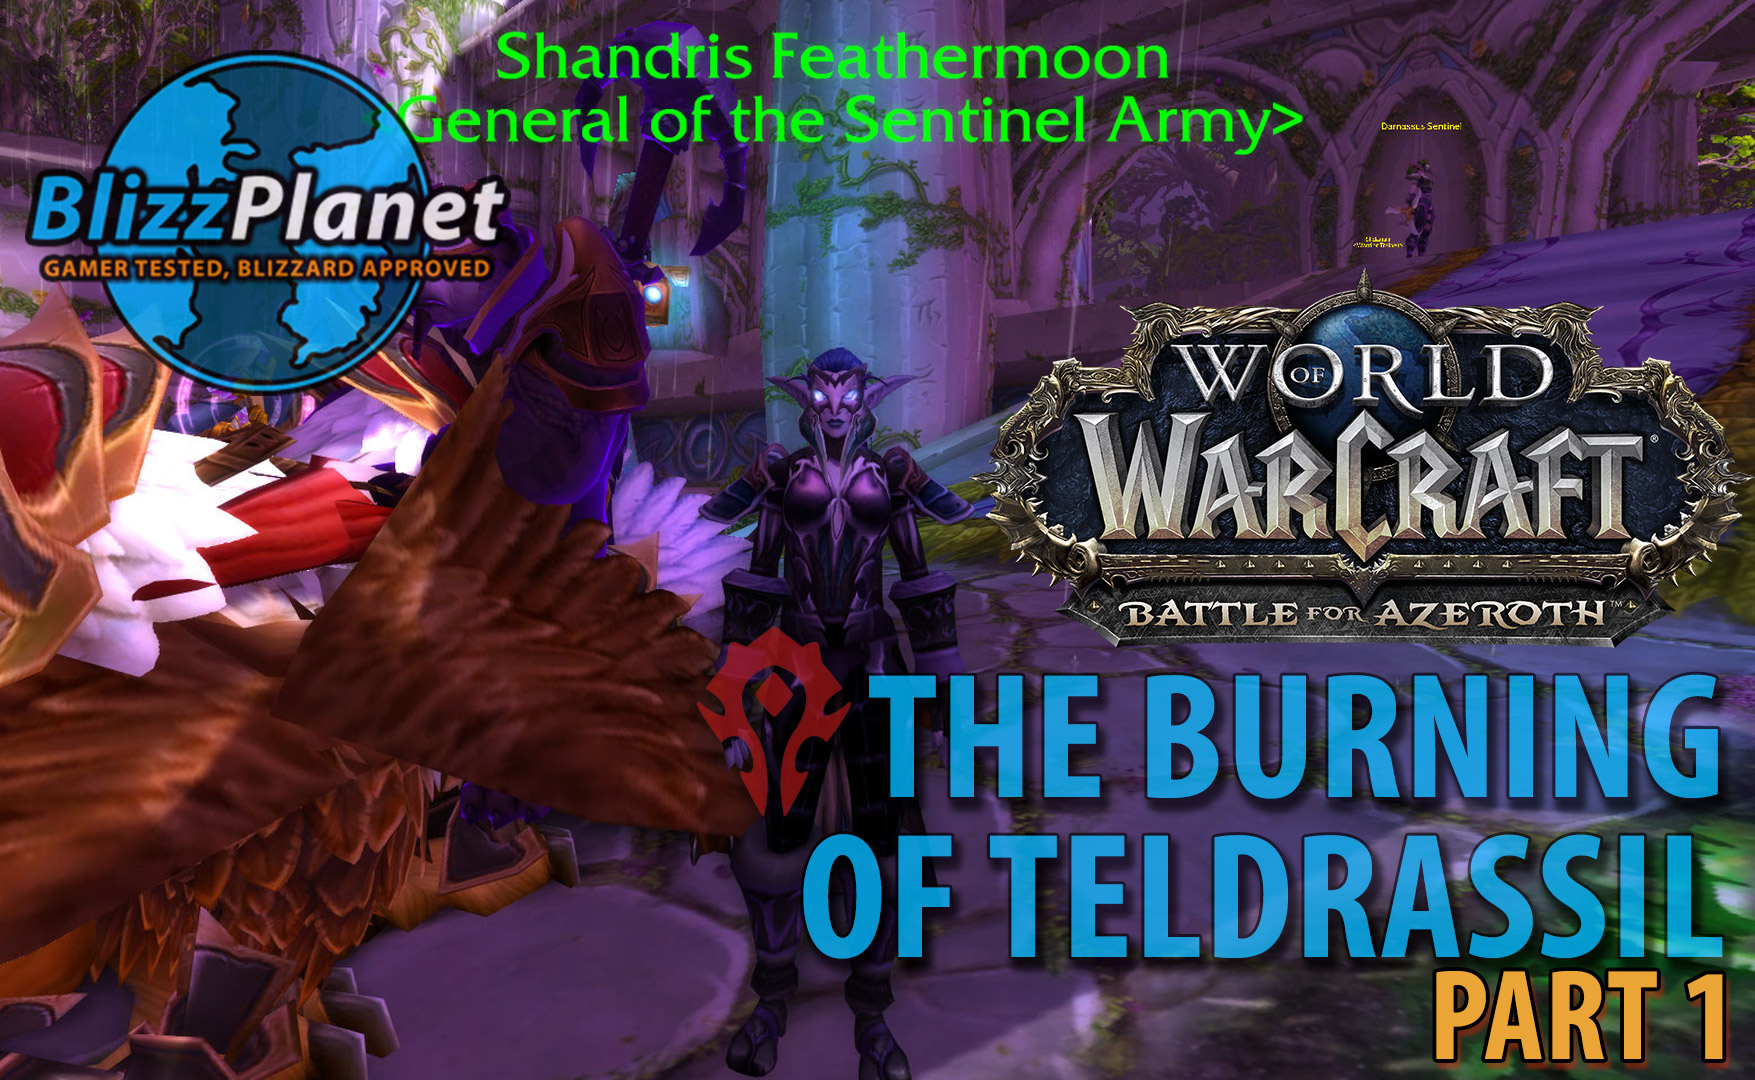 The Burning of Teldrassil